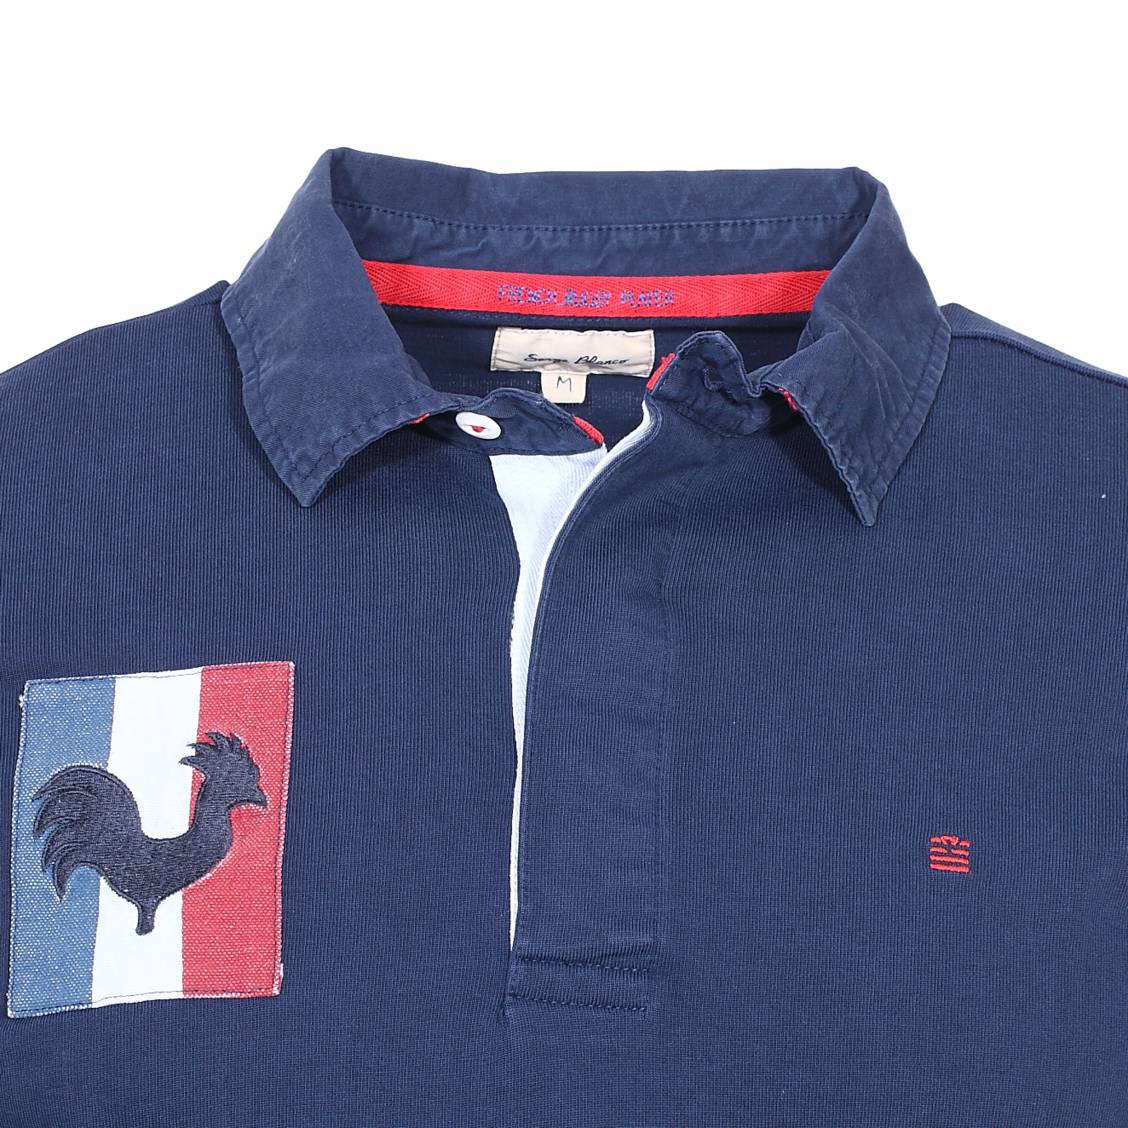 Polos à manches longues Serge Blanco rouges homme DUgSy